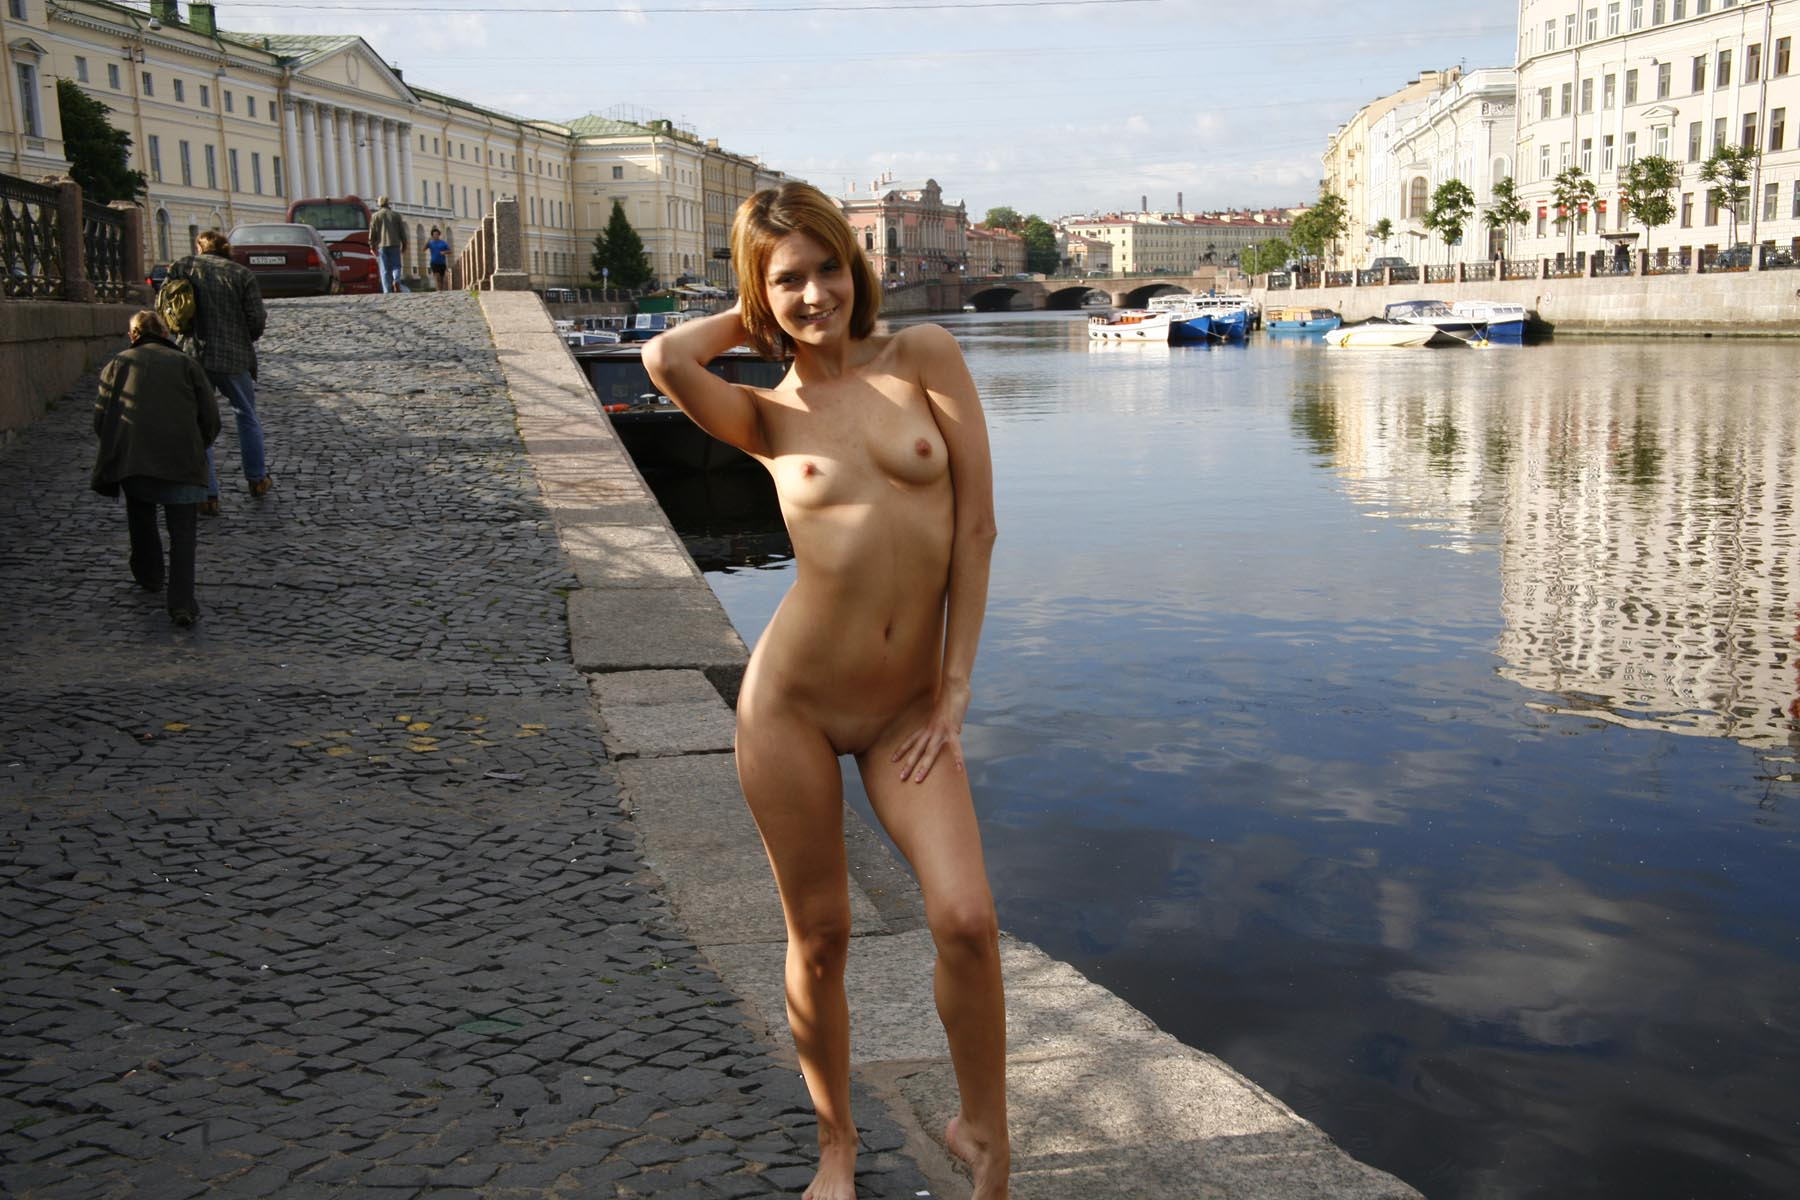 Youngsters nudist crazy nn russian